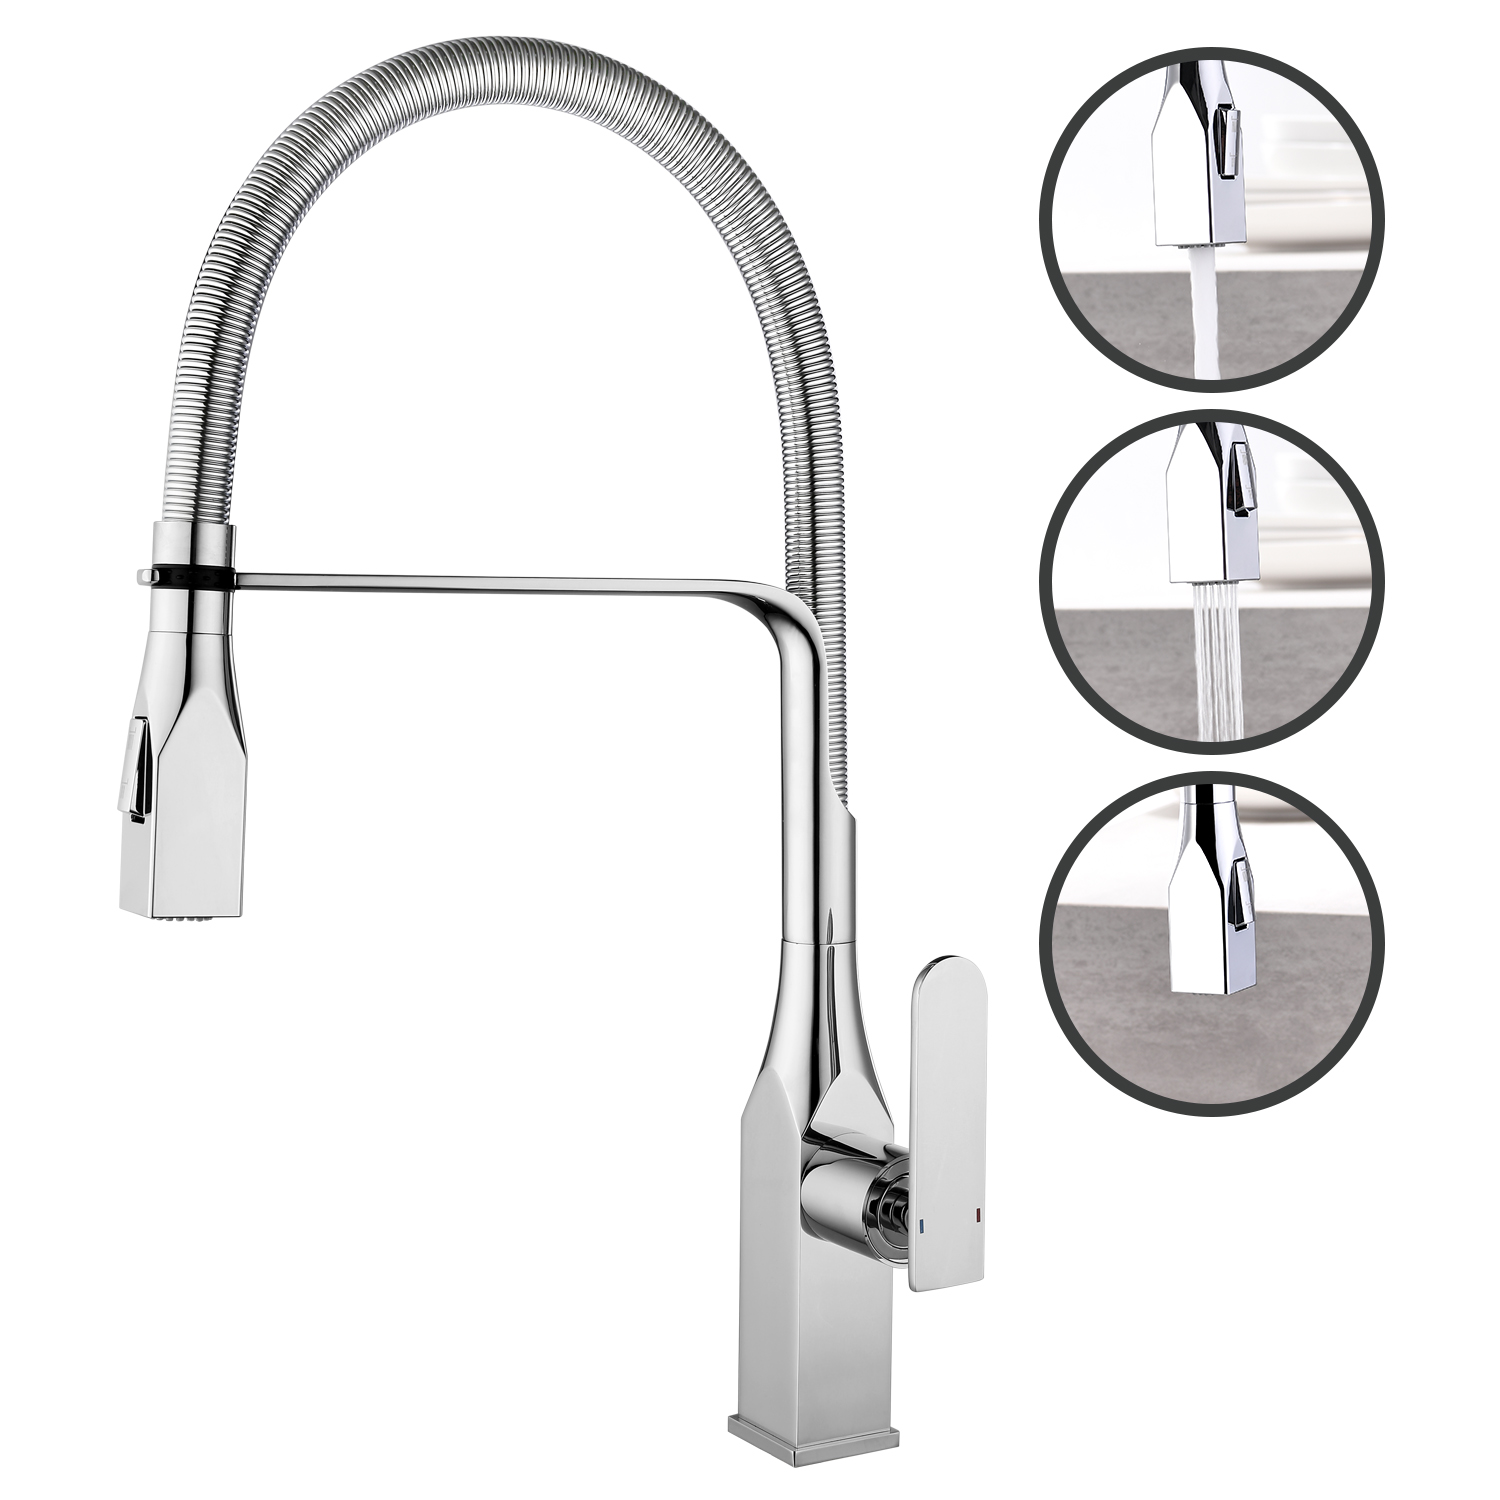 Kitchen Faucet Dual Spray Mode Single Handle Bathroom Sink Faucet Ceramic Valve 360 Degree Swivel Basin Faucet Kitchen Water Tap